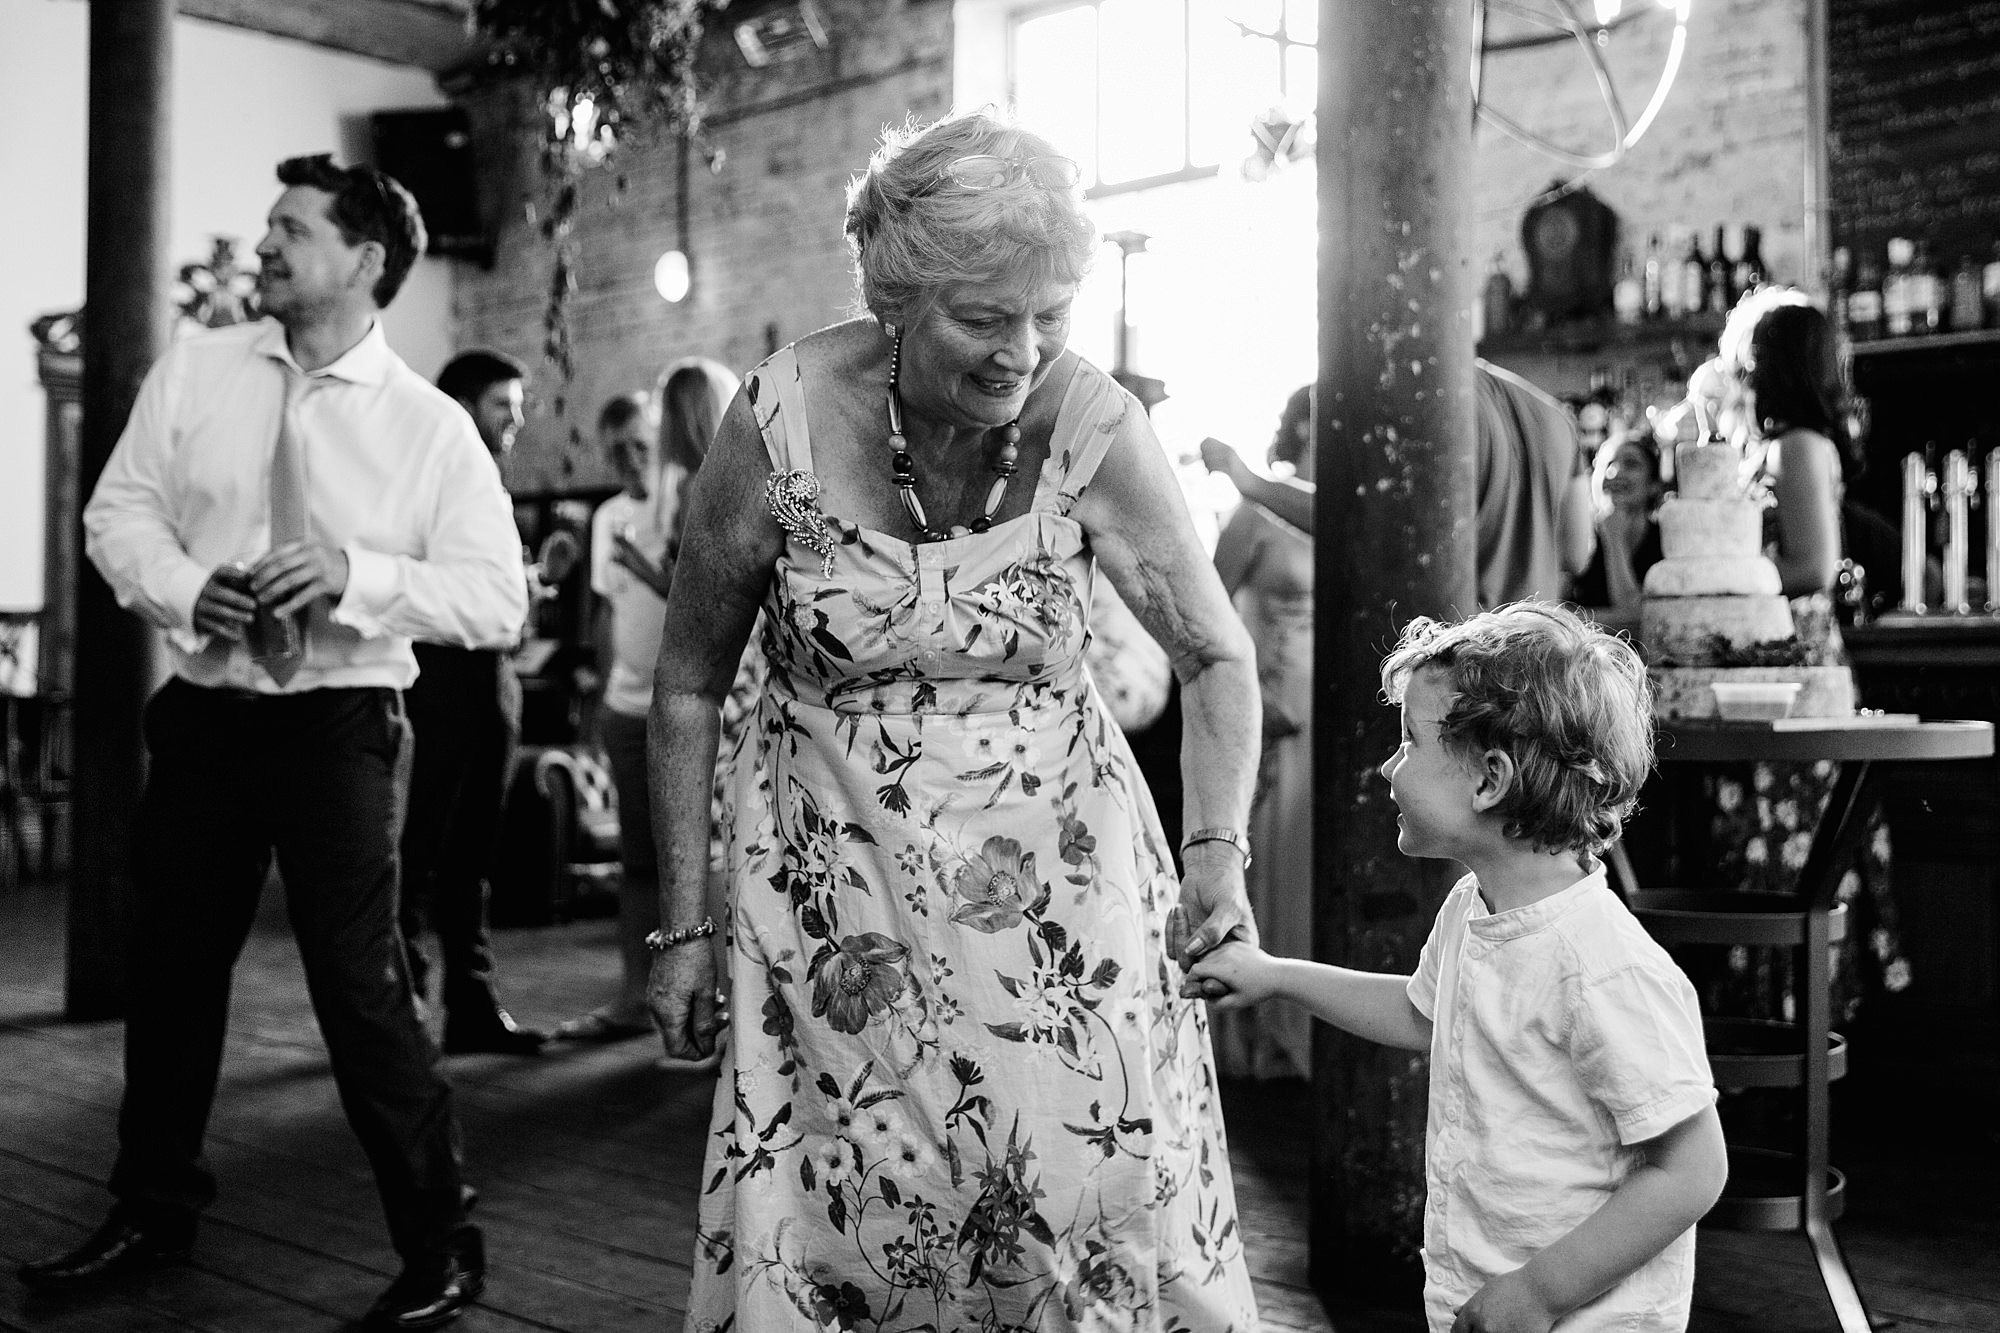 Clapton Country Club wedding photography guests dance together